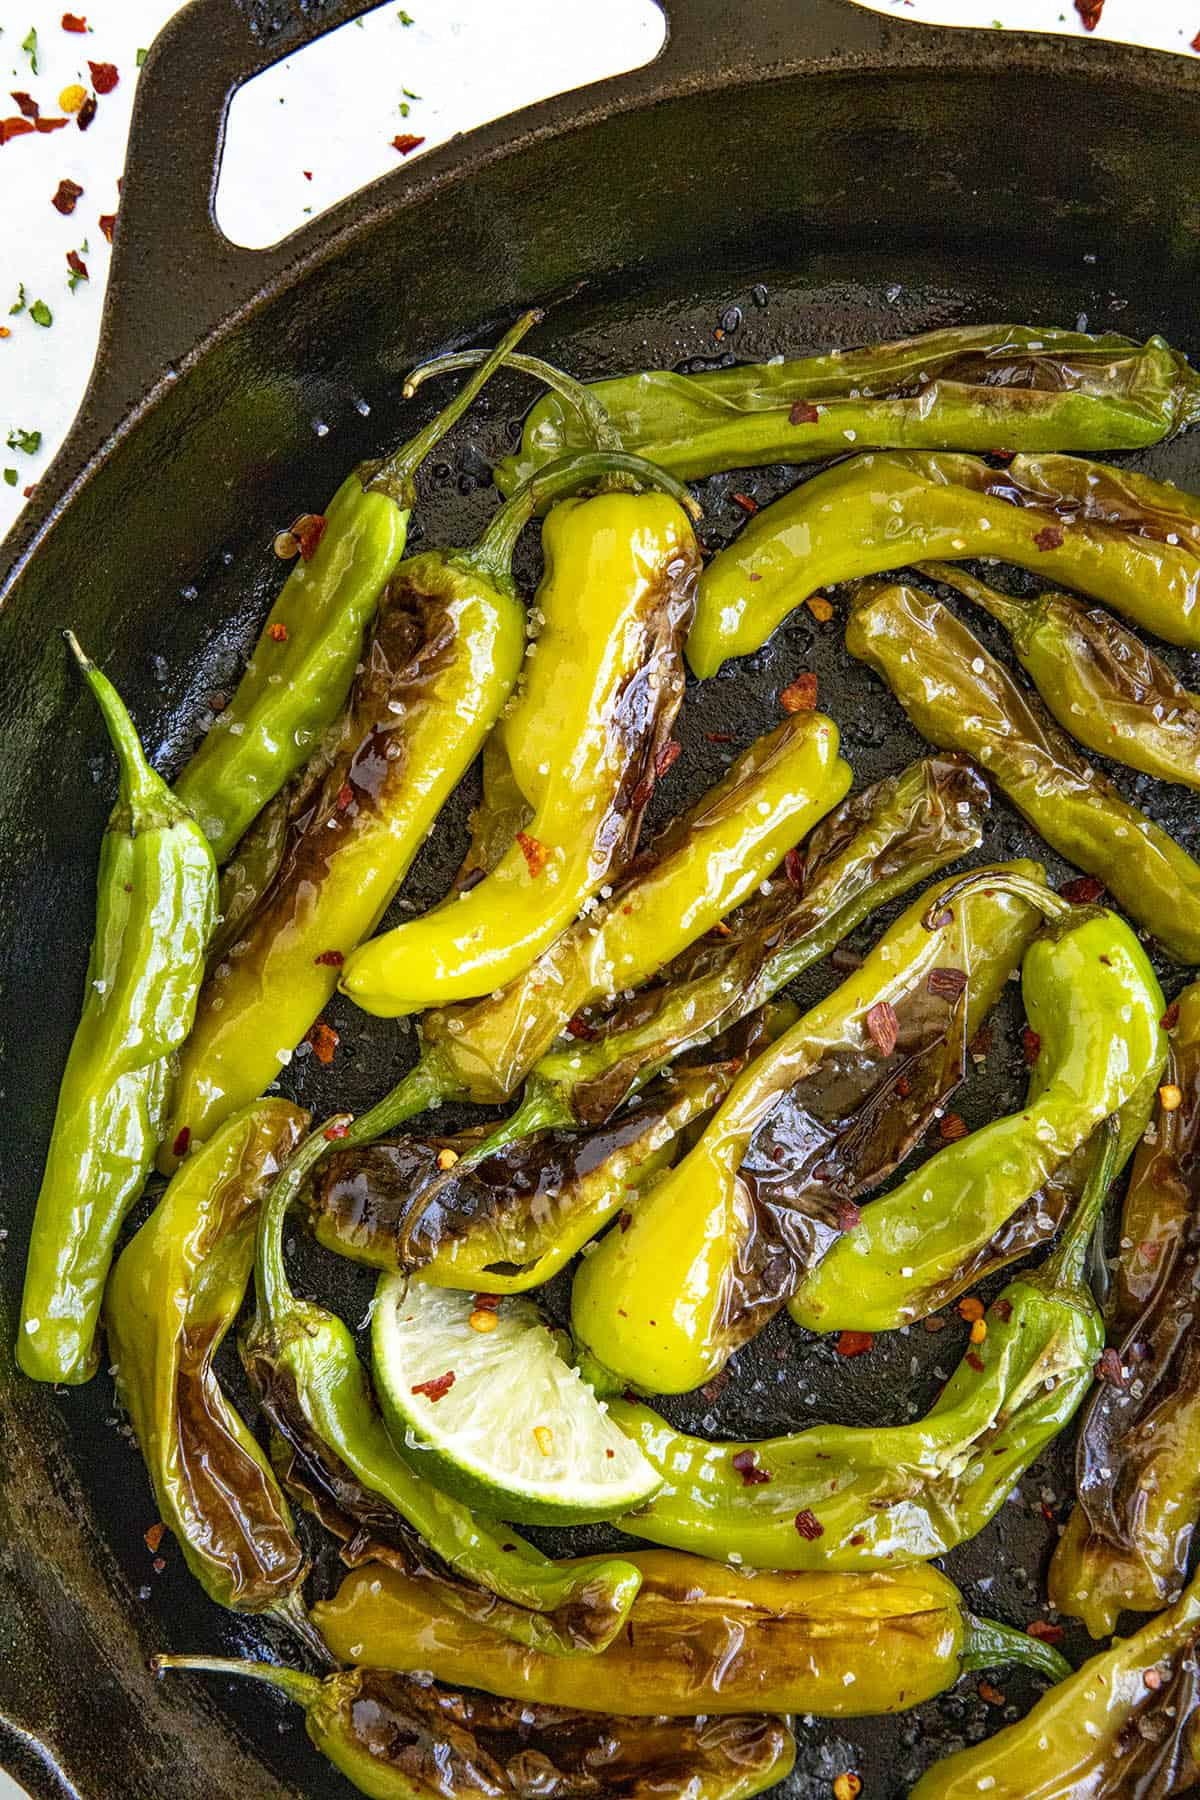 Hot, salted Blistered Shishito Peppers